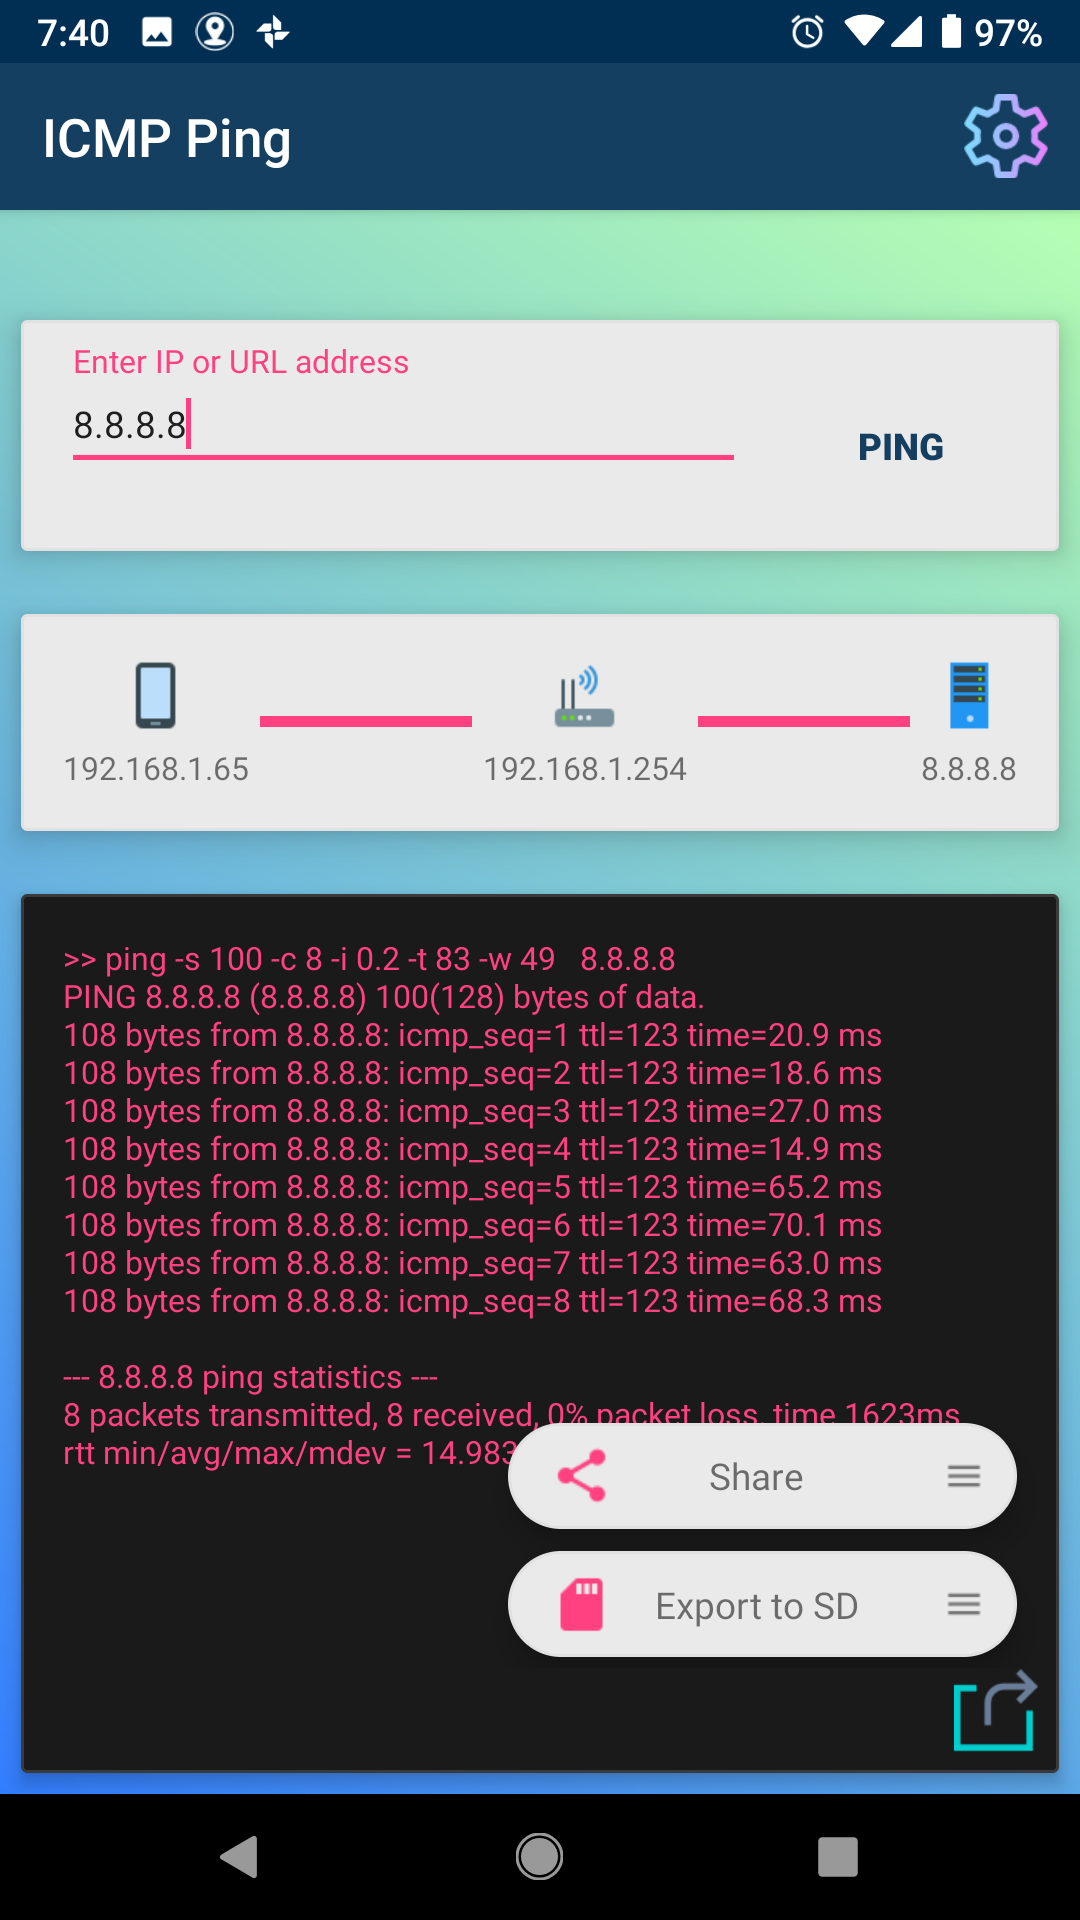 Amazon com: PING: Network Tool (ICMP) - Check Connectivity: Appstore